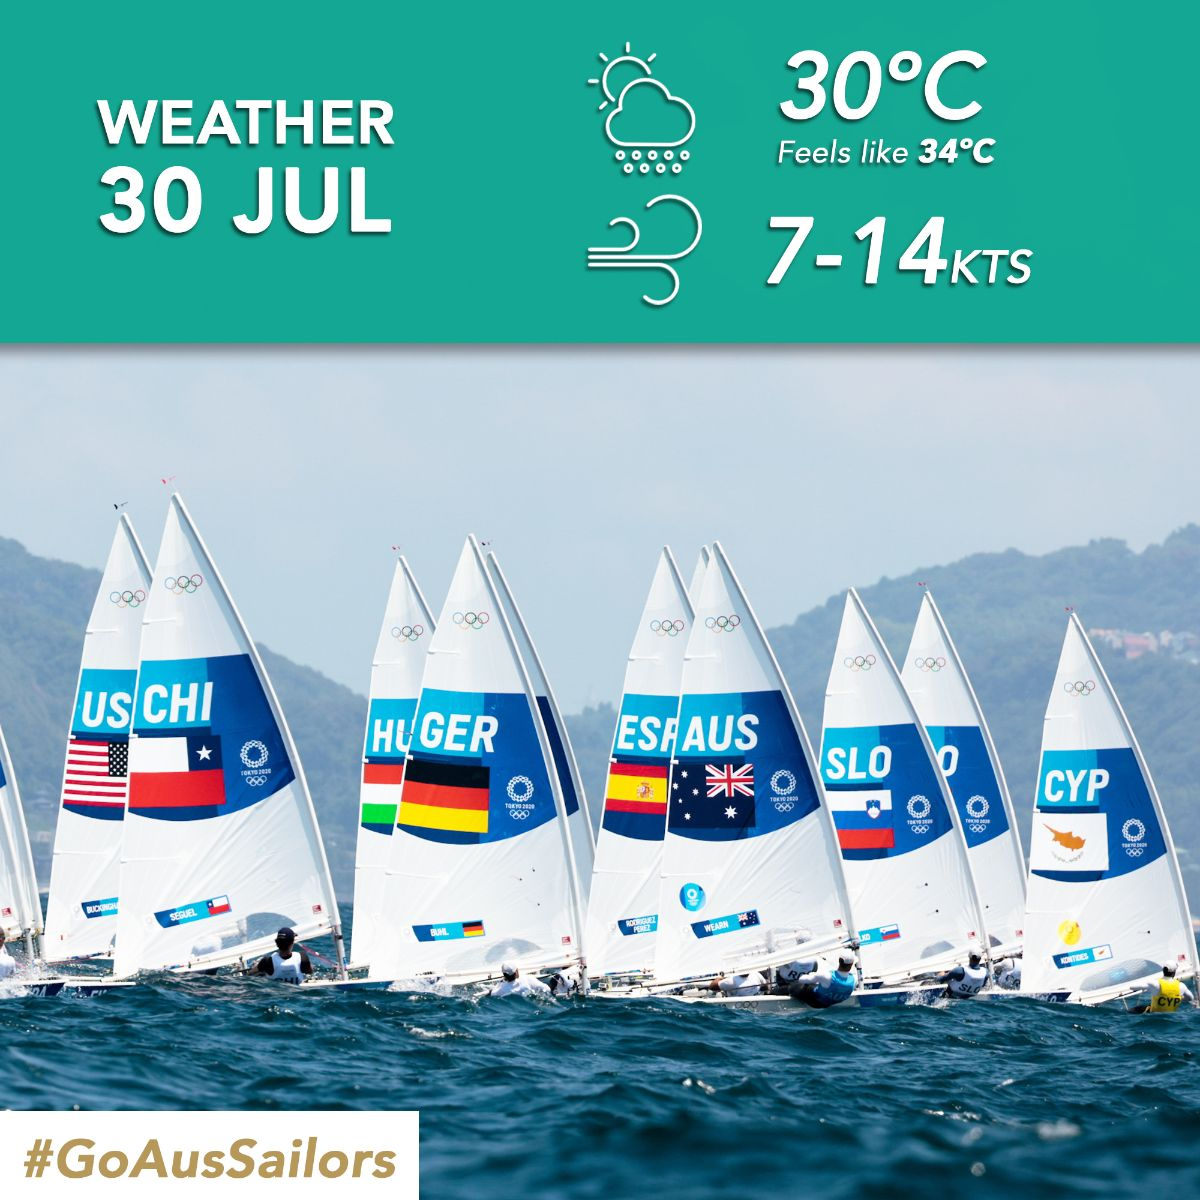 Lighter winds are forecasted for day six of the sailing competition at Enoshima.